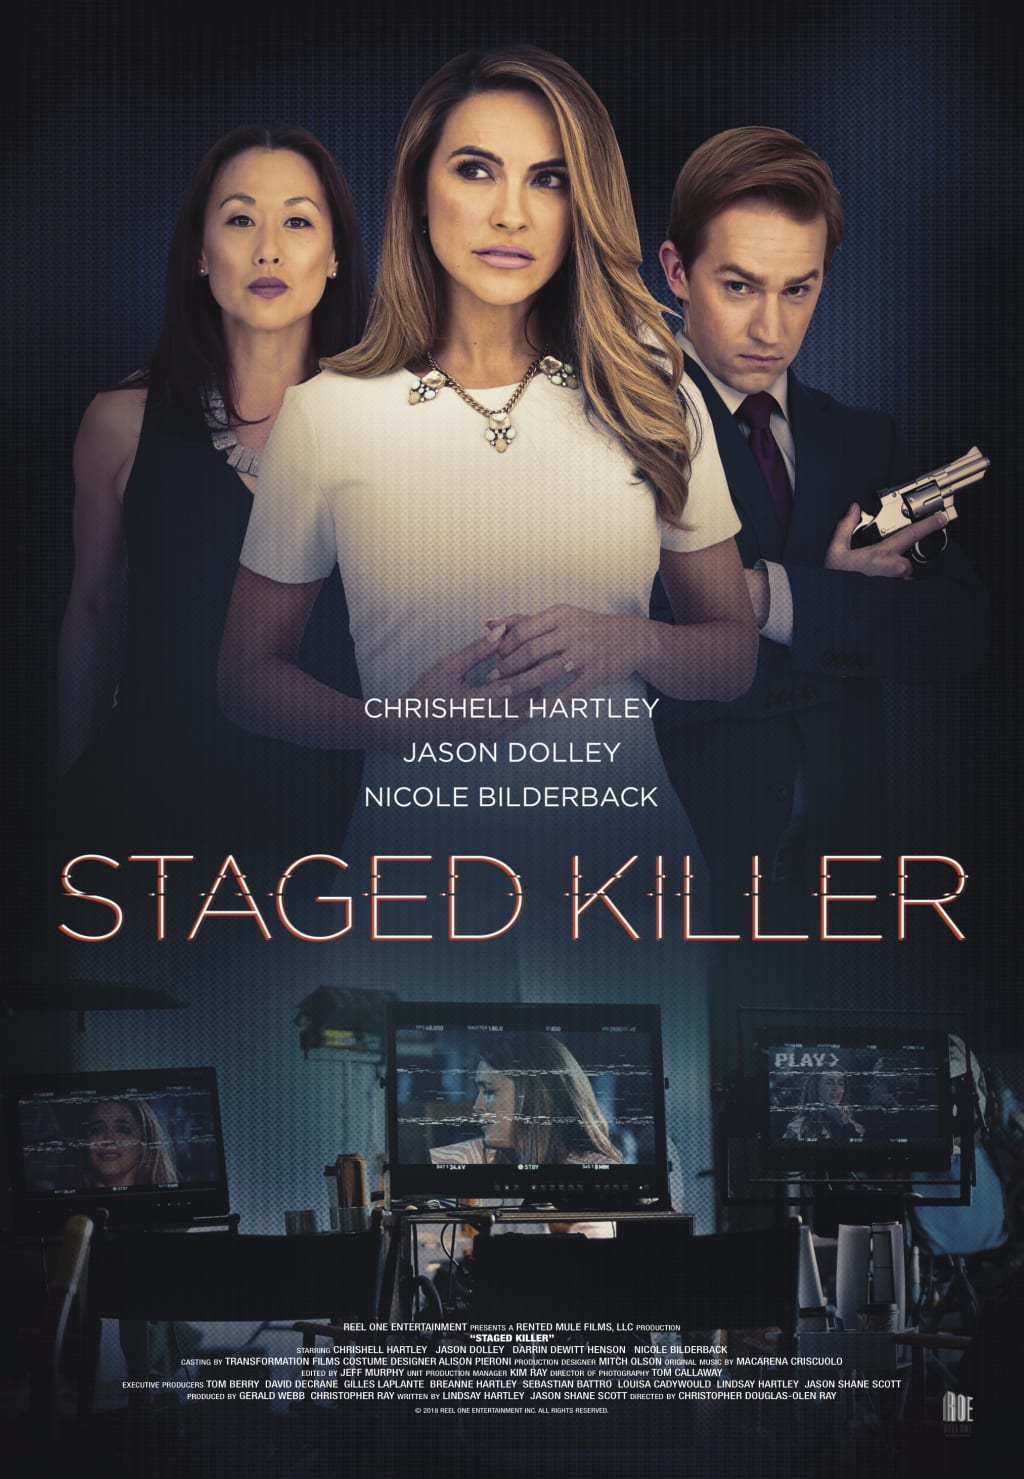 Film Review: 'Staged Killer'